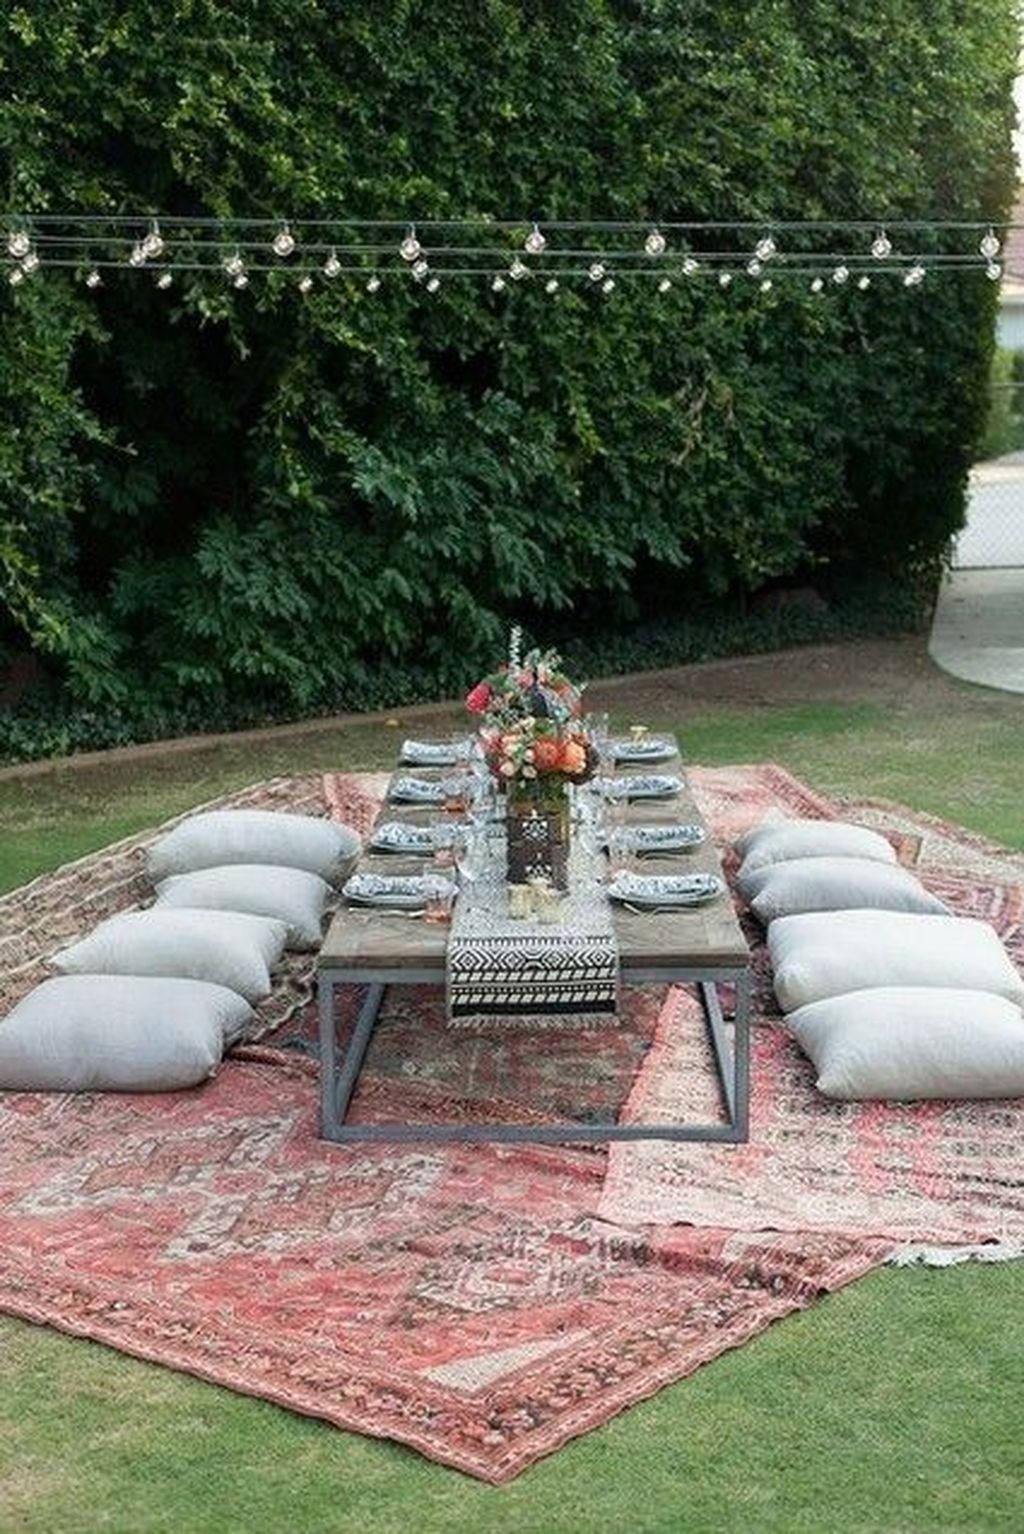 The Best Backyard Summer Party Decorating Ideas 11